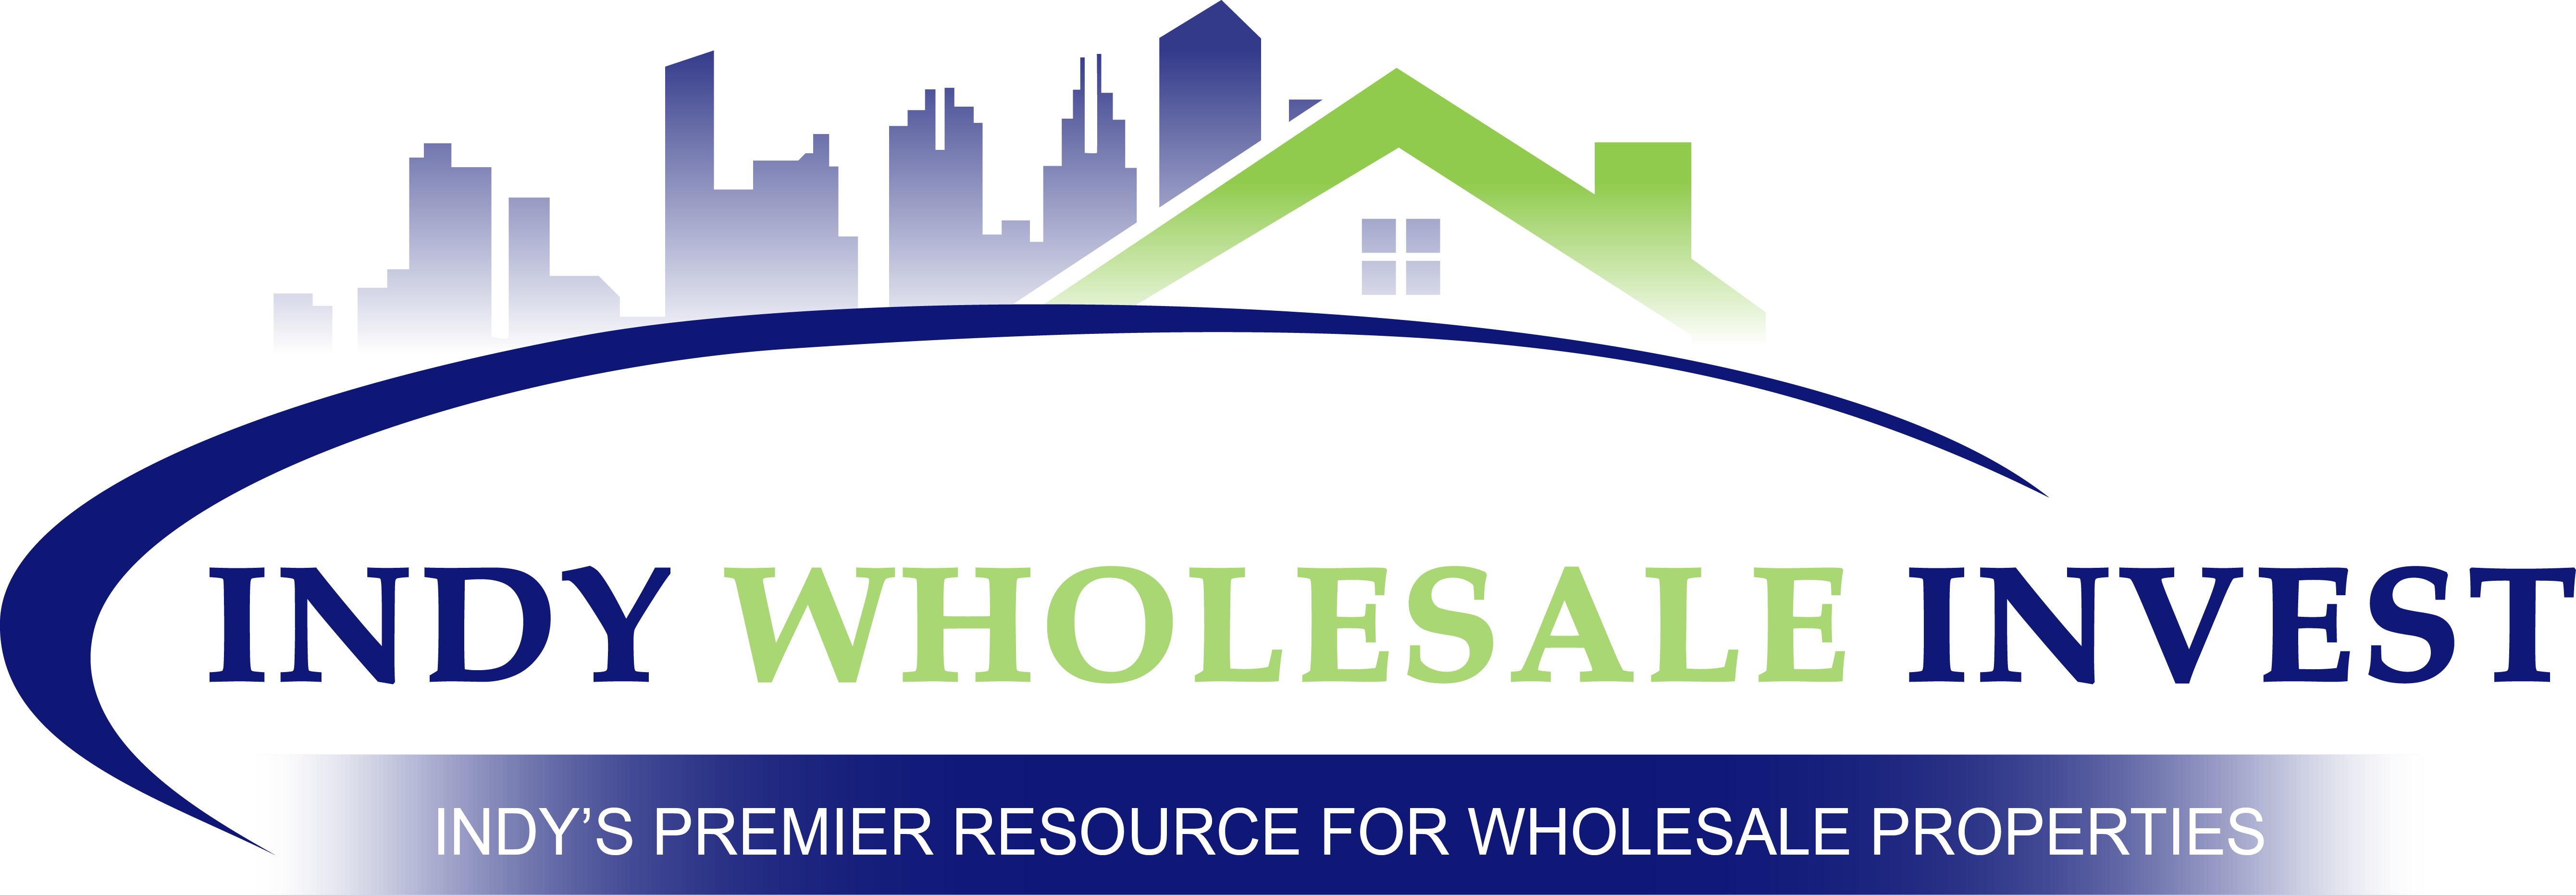 Indy Wholesale Invest, LLC logo